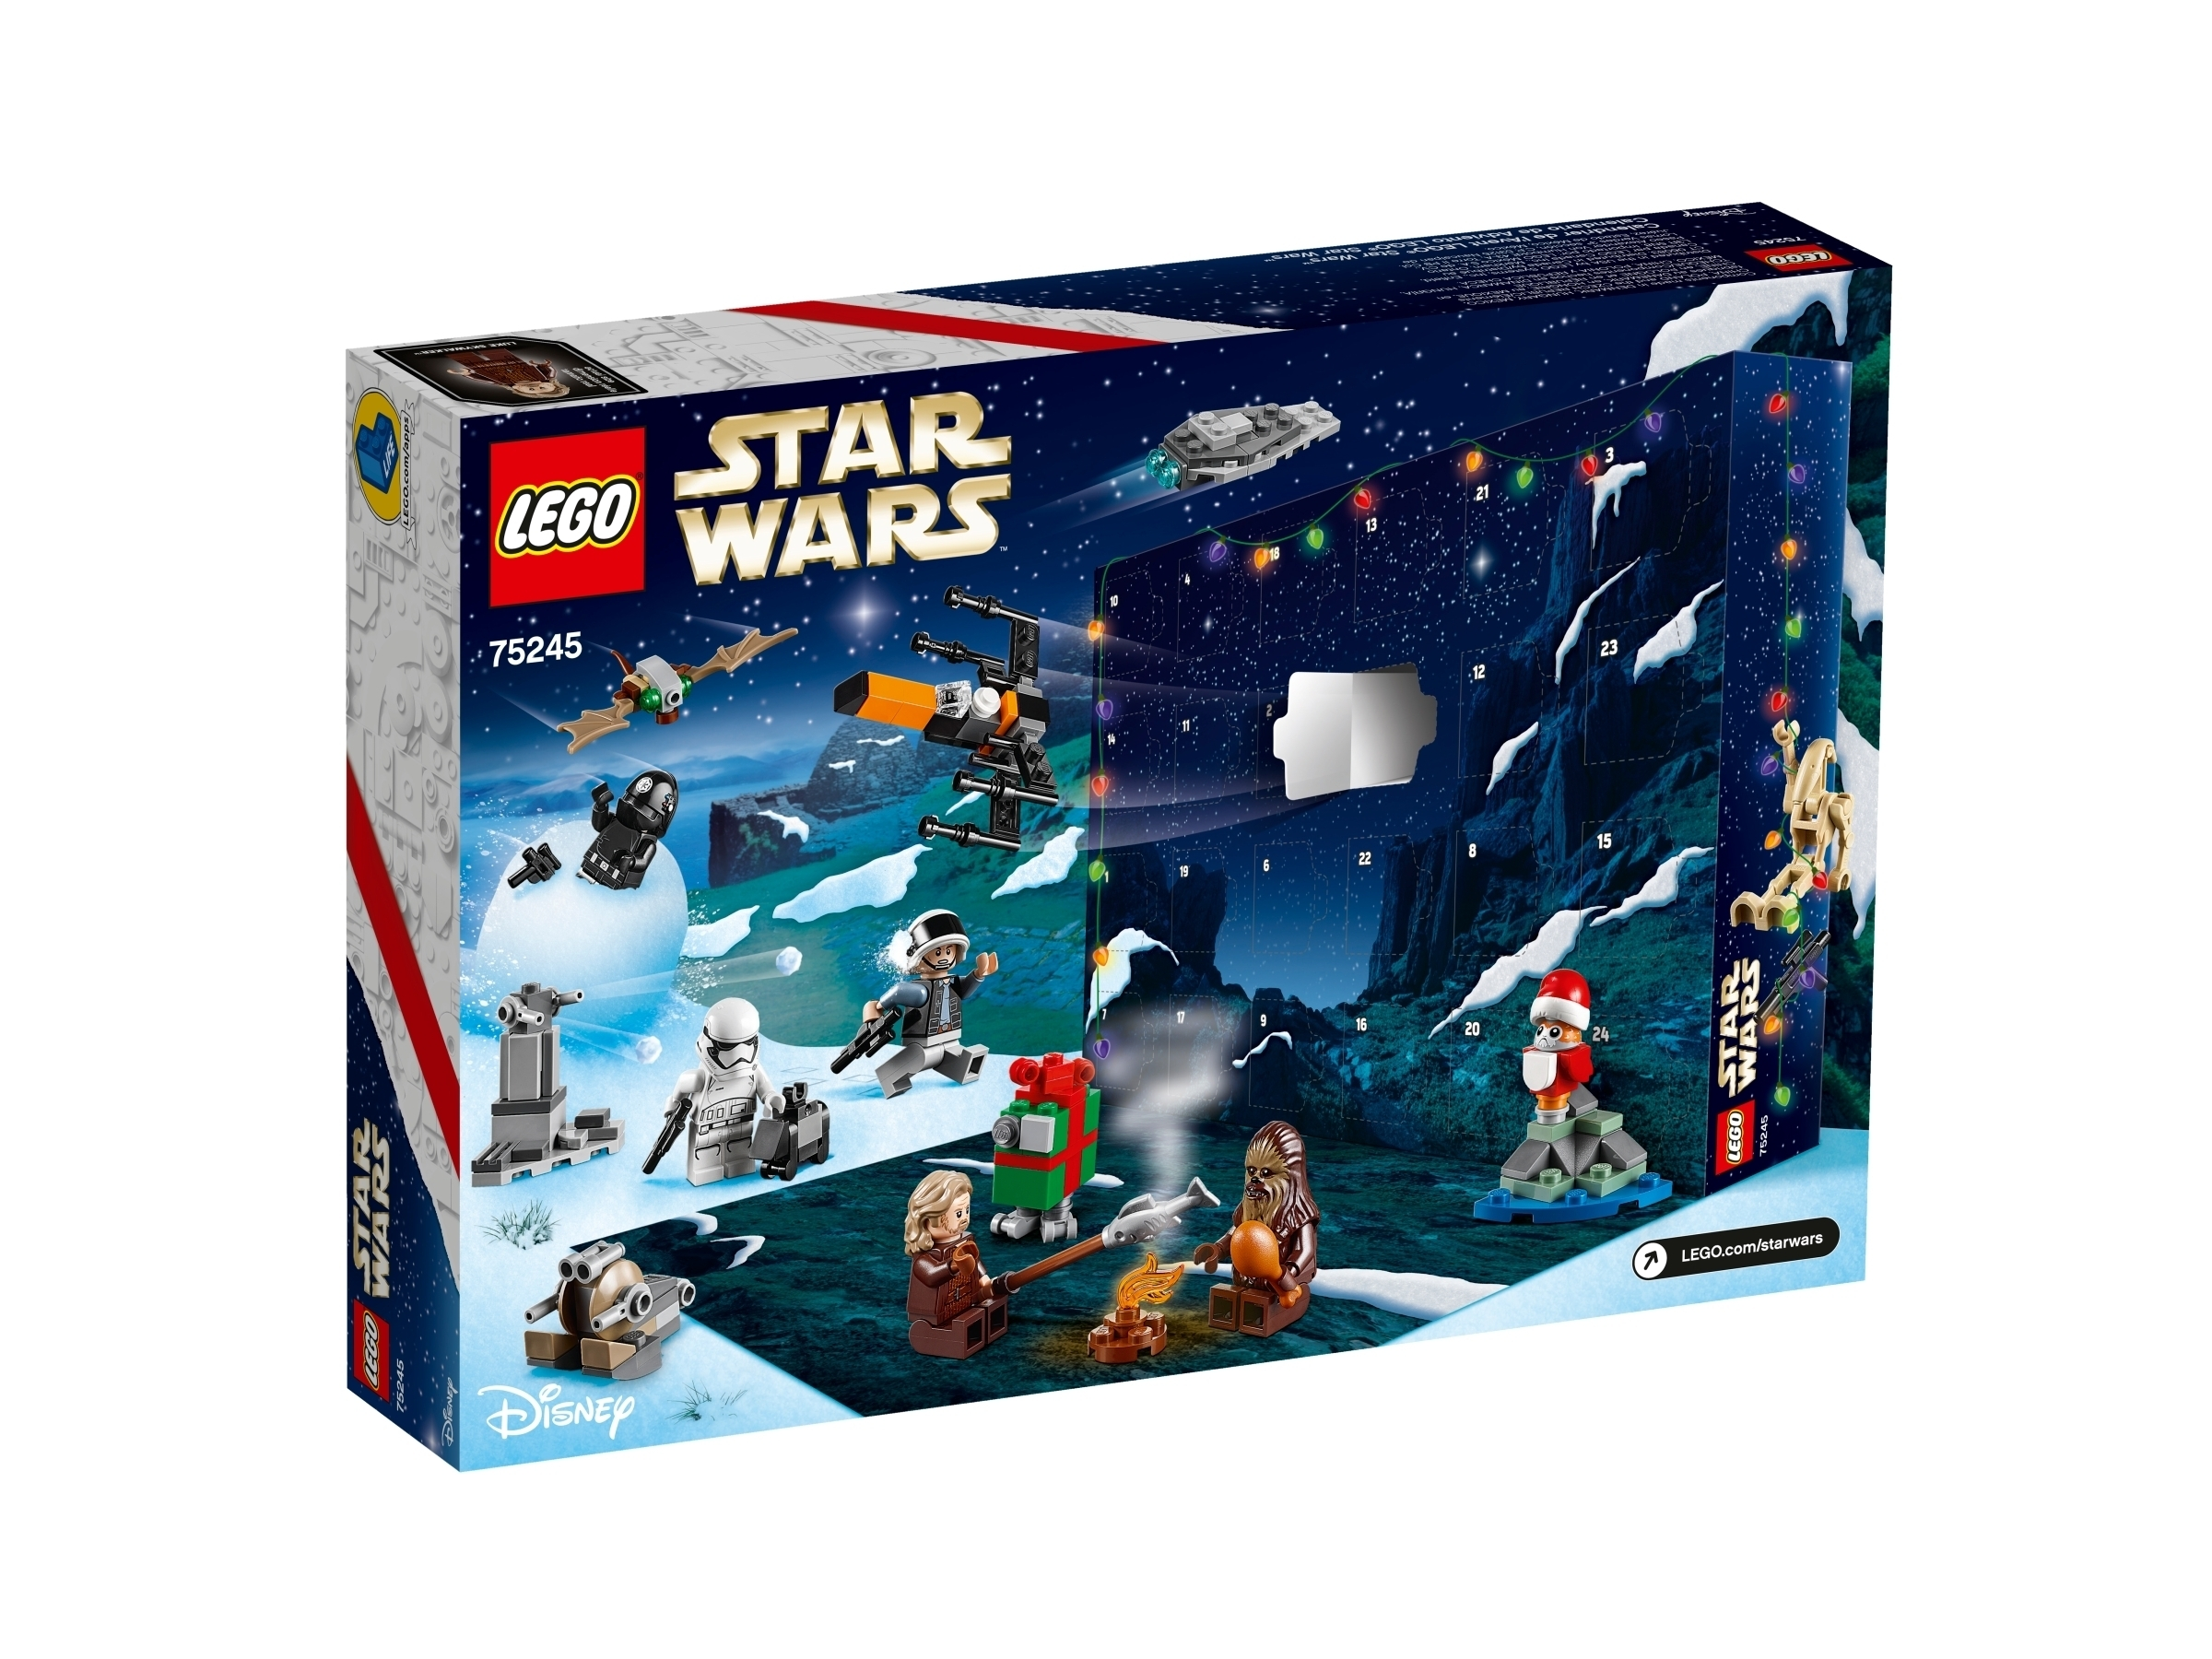 Lego® Star Wars™ Advent Calendar with Lego Star Wars Callendar 2019